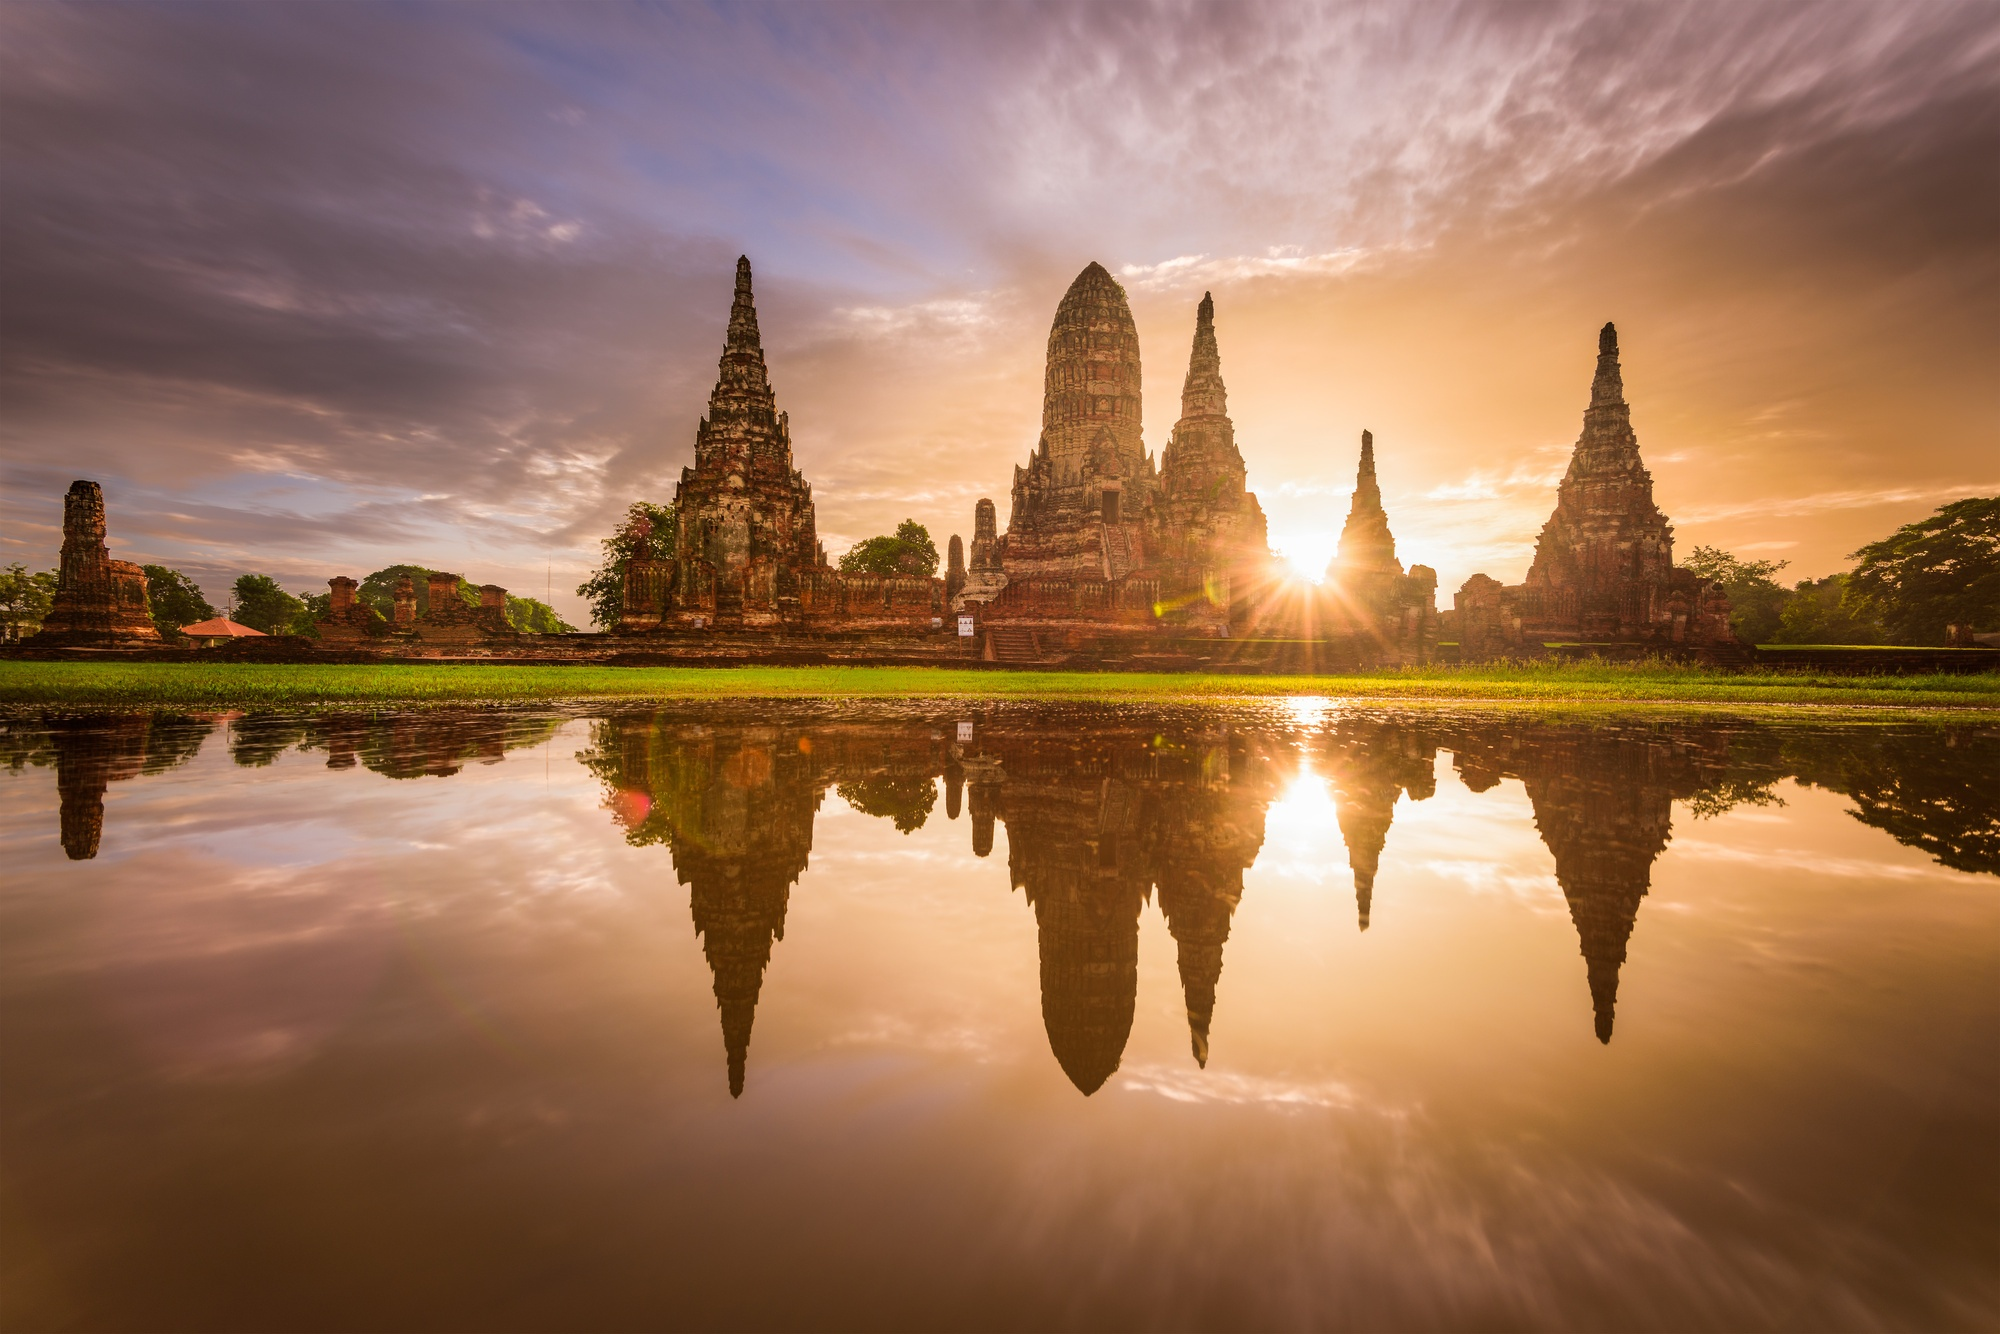 Southeast Asia Travel: 5 Bucket List Items You Shouldn't Miss